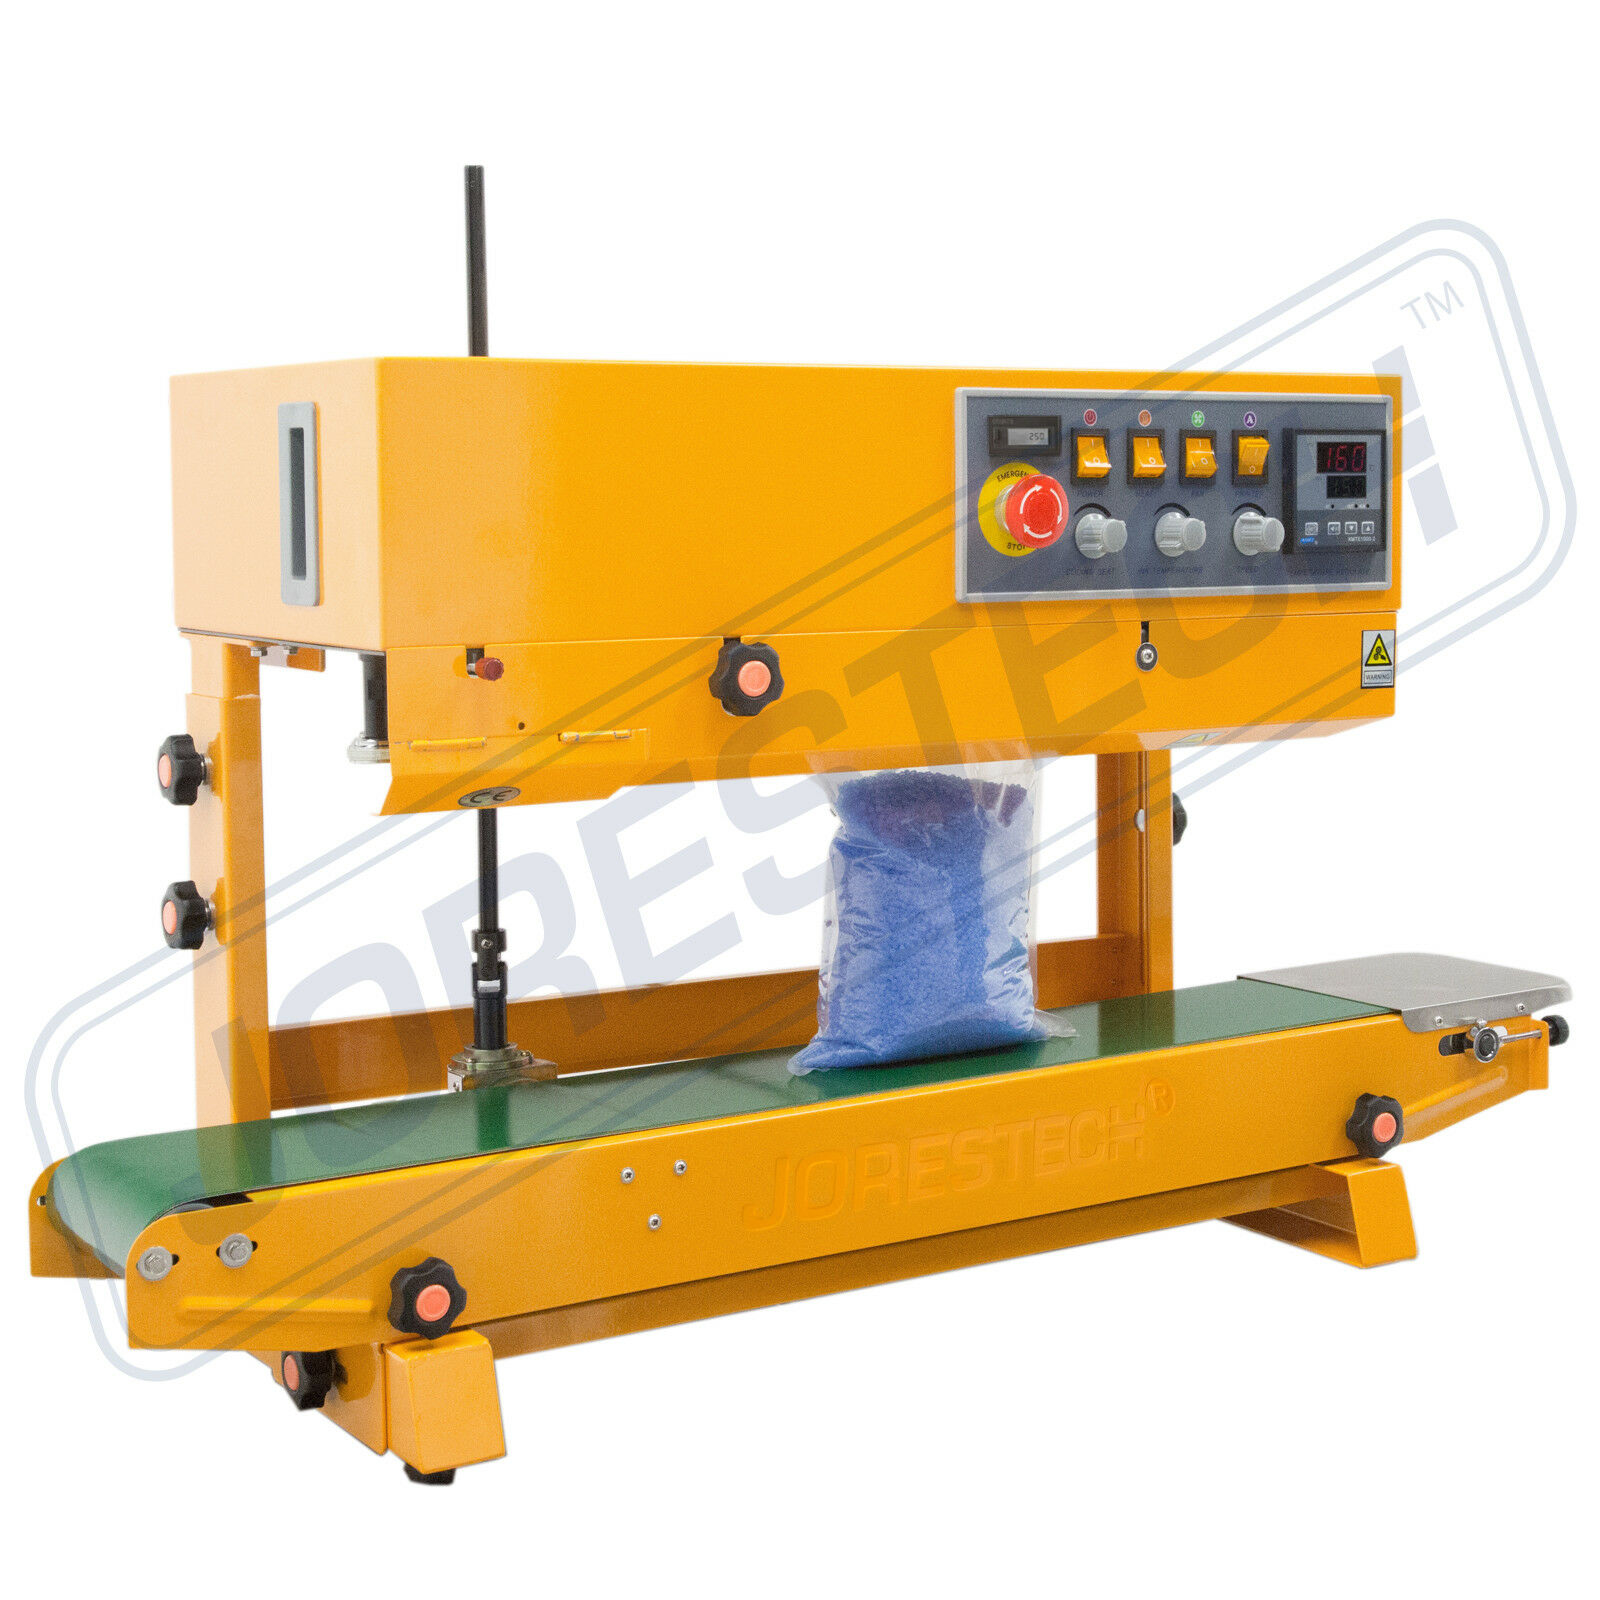 Continuous Plastic Bag Band Sealing Date Sealer printer Machine JoresTech